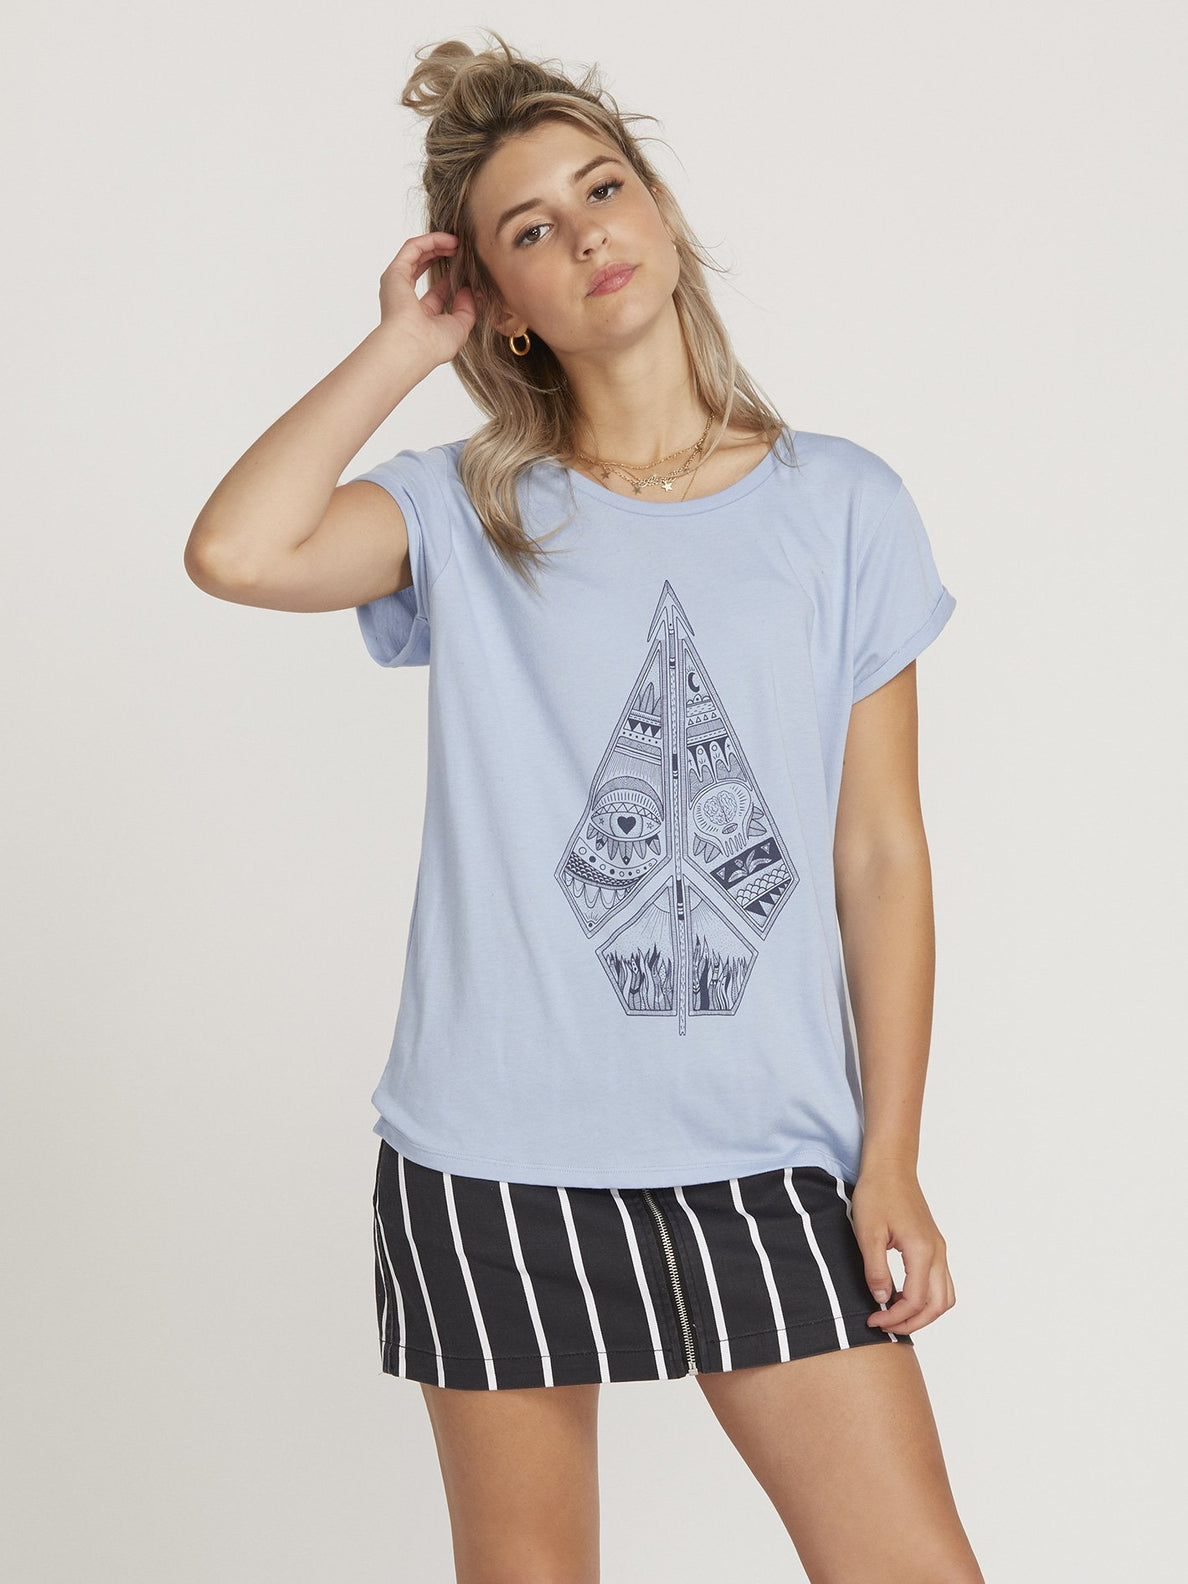 Radical Daze T-shirt  - Misty Blue